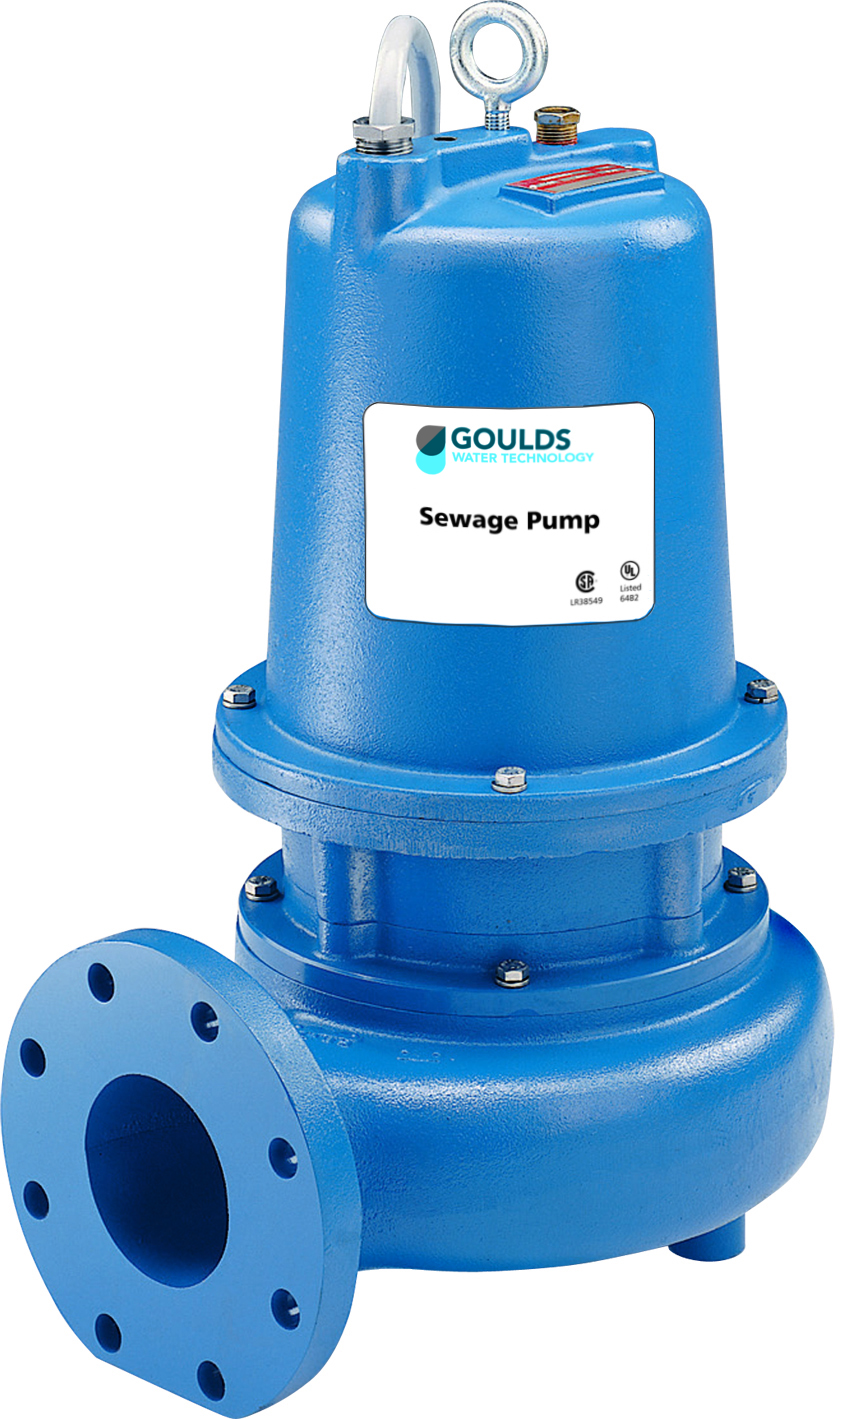 3888D4 – WS_D4 Series Sewage Pumps